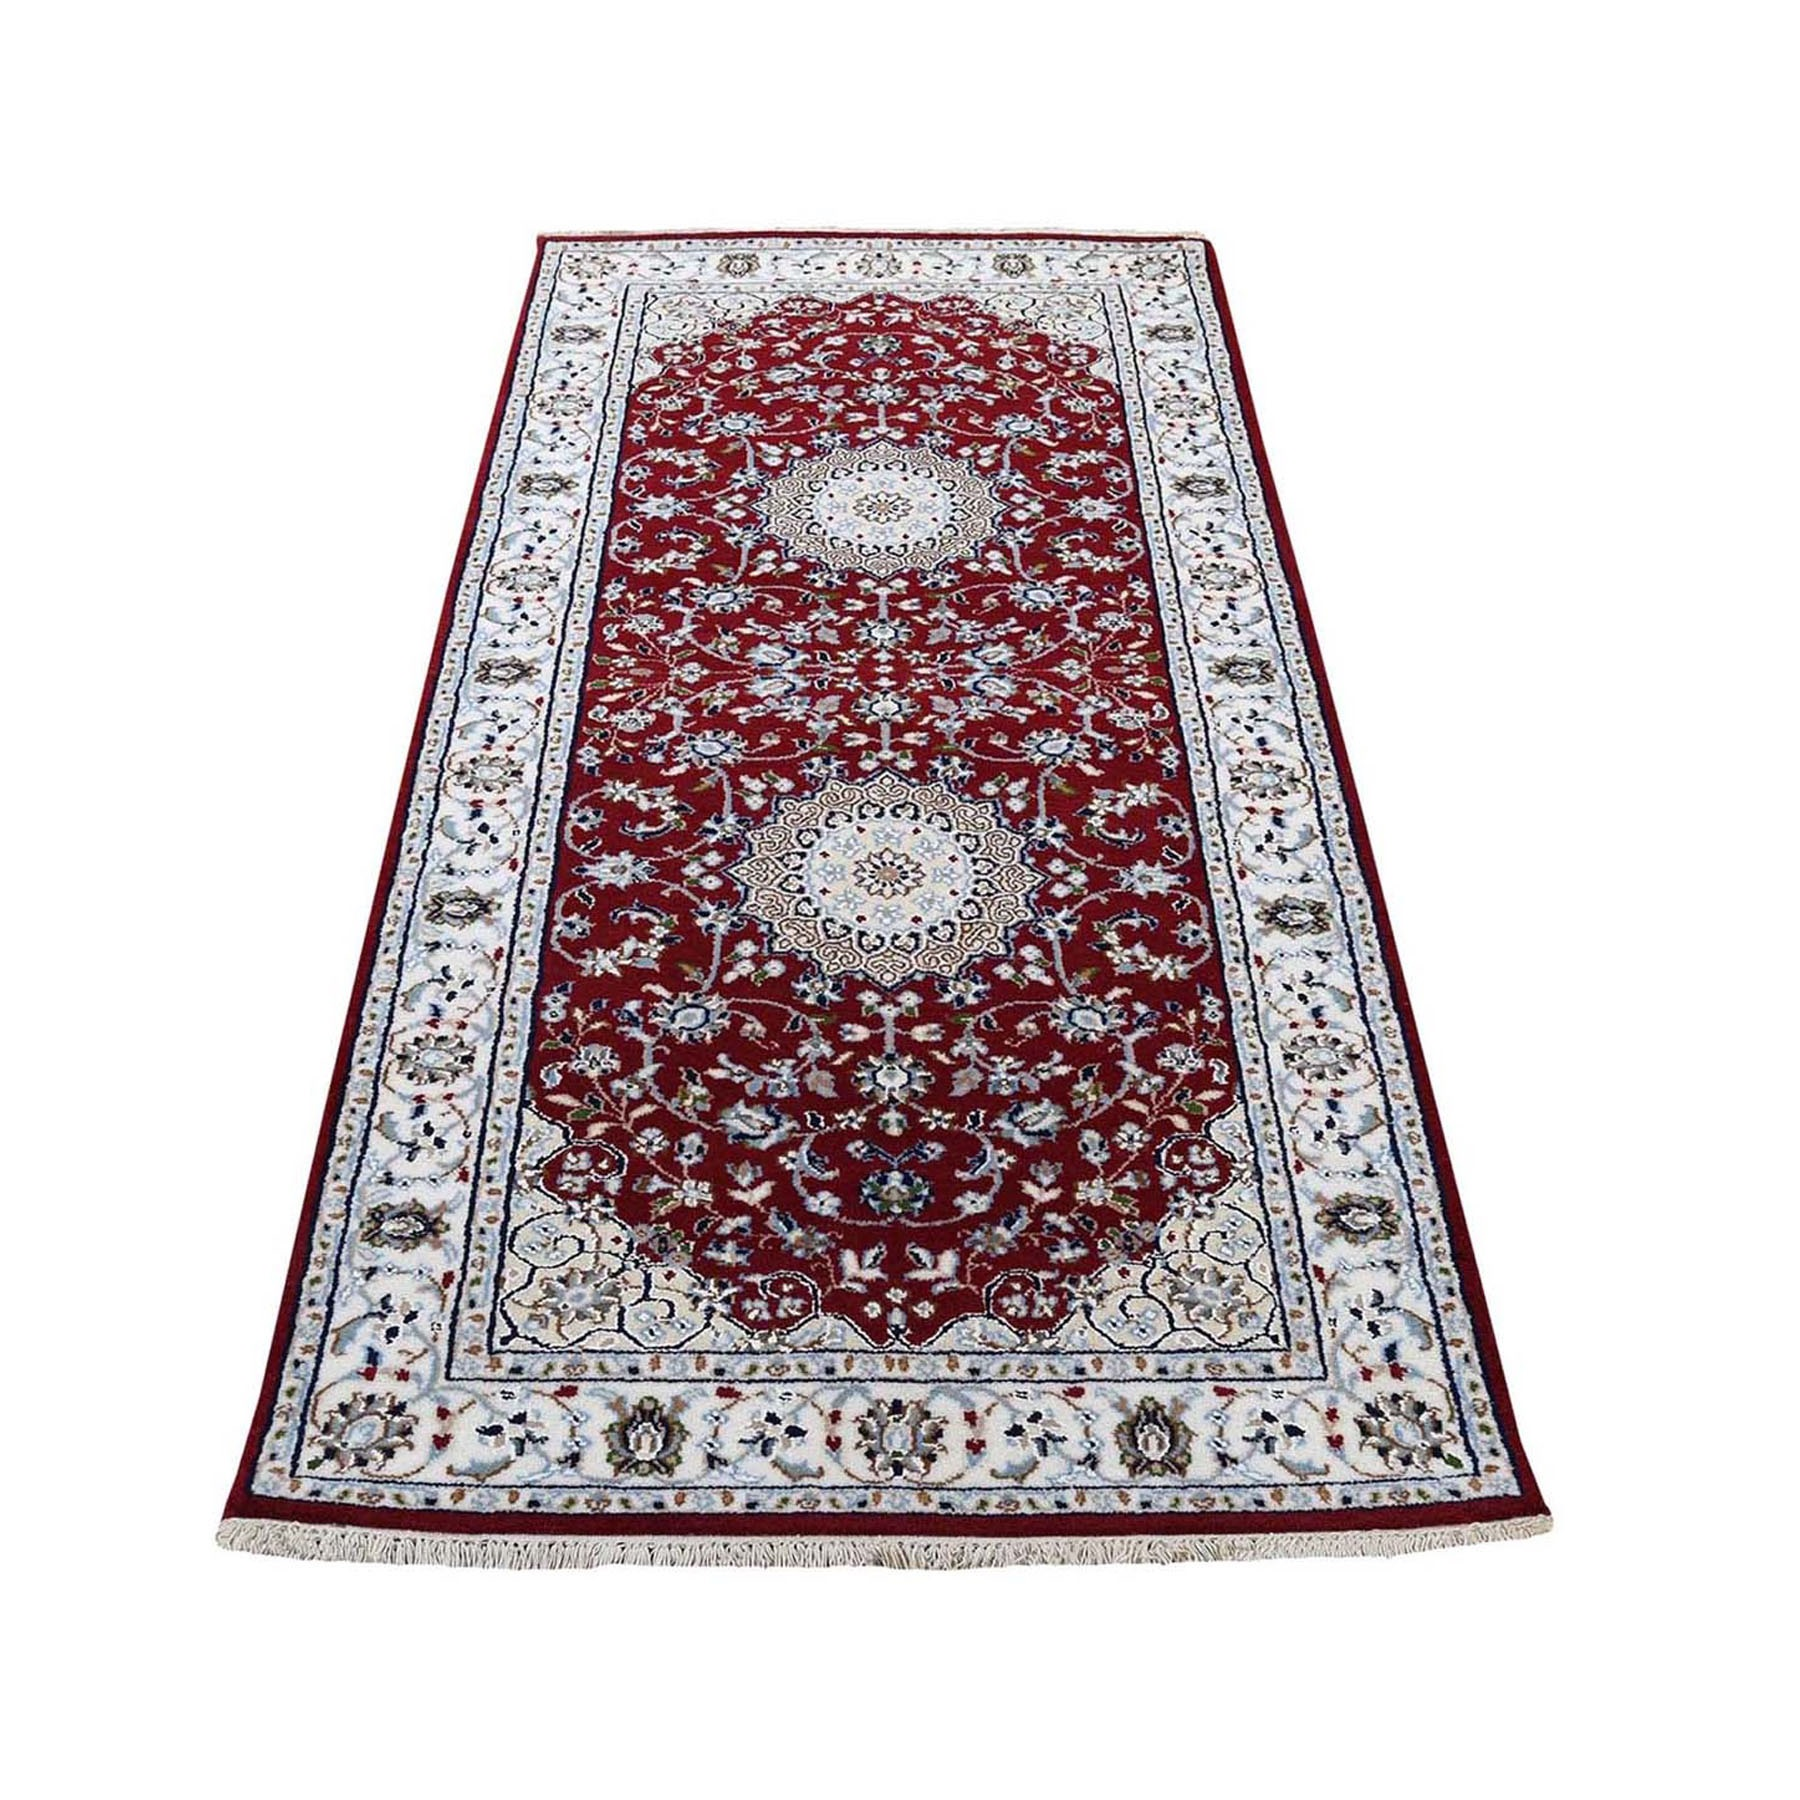 "2'8""x6'1"" Red Nain Runner Wool And Silk 250 KPSI Hand Woven Oriental Rug"